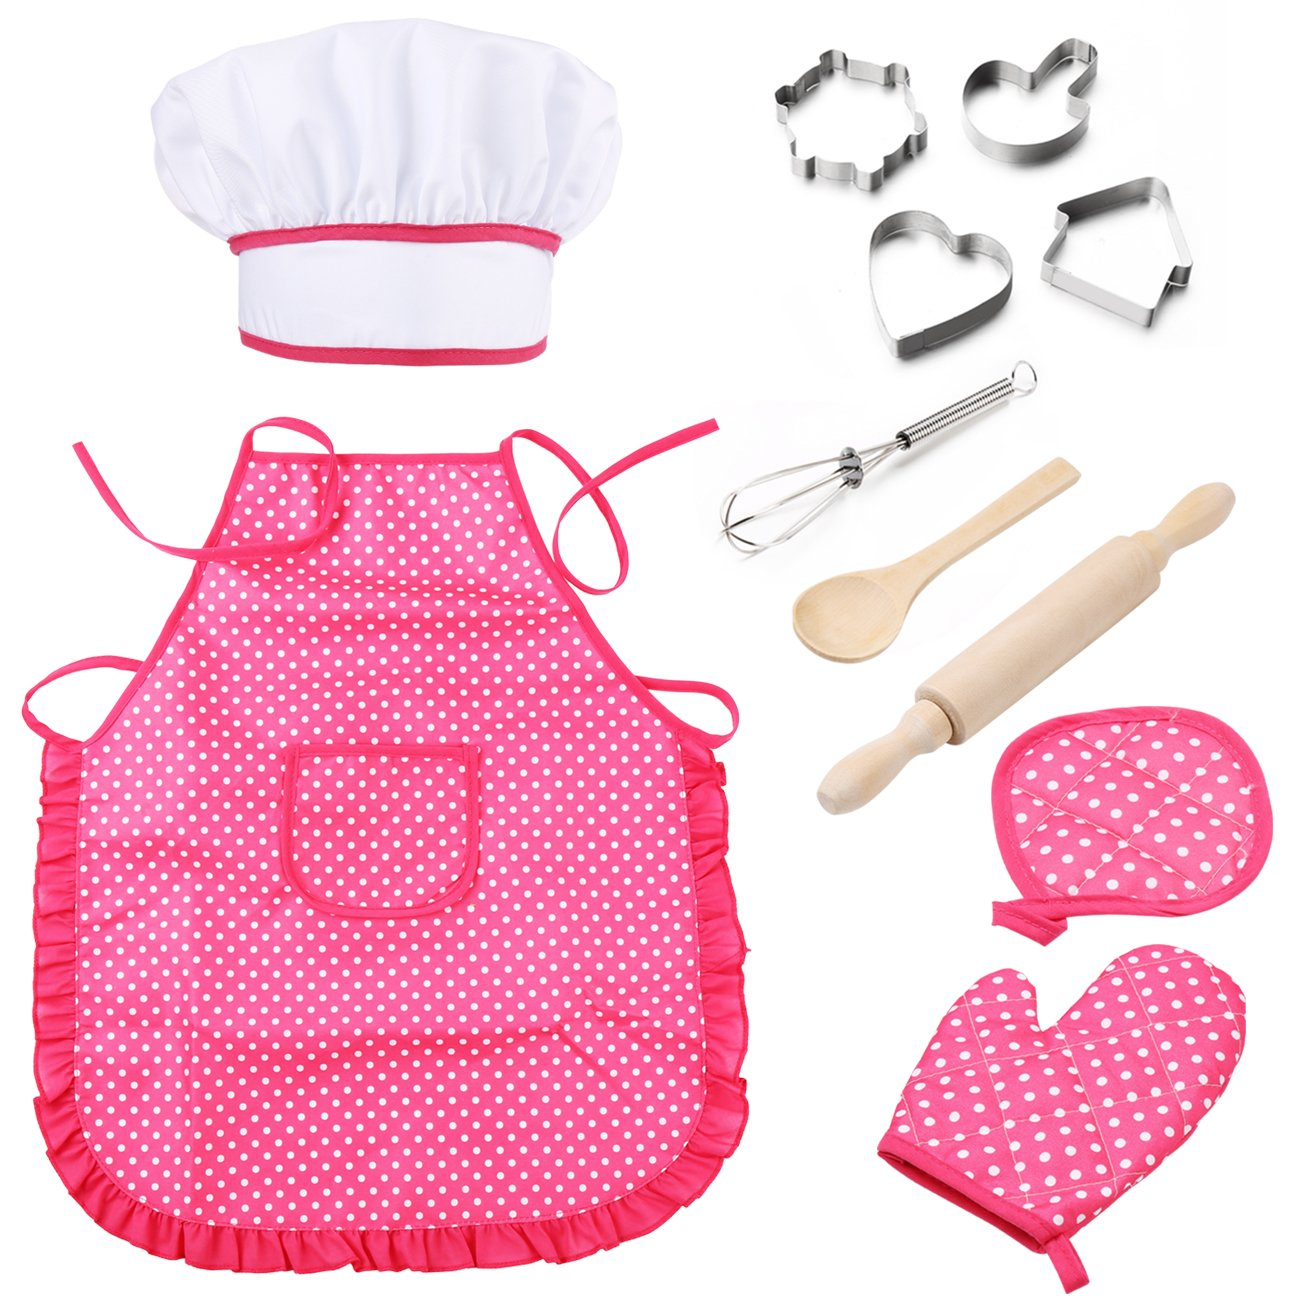 Mansalee Chef Set for Kids, Girls Apron Set, Easter Cookie Cutter Set, Cooking Play Set, 11 Pcs Great Gift, Chef Hat, and Other Accessories for Toddler Career Role Play Children Pretend Play (Pink) ShangSheng WQ5103